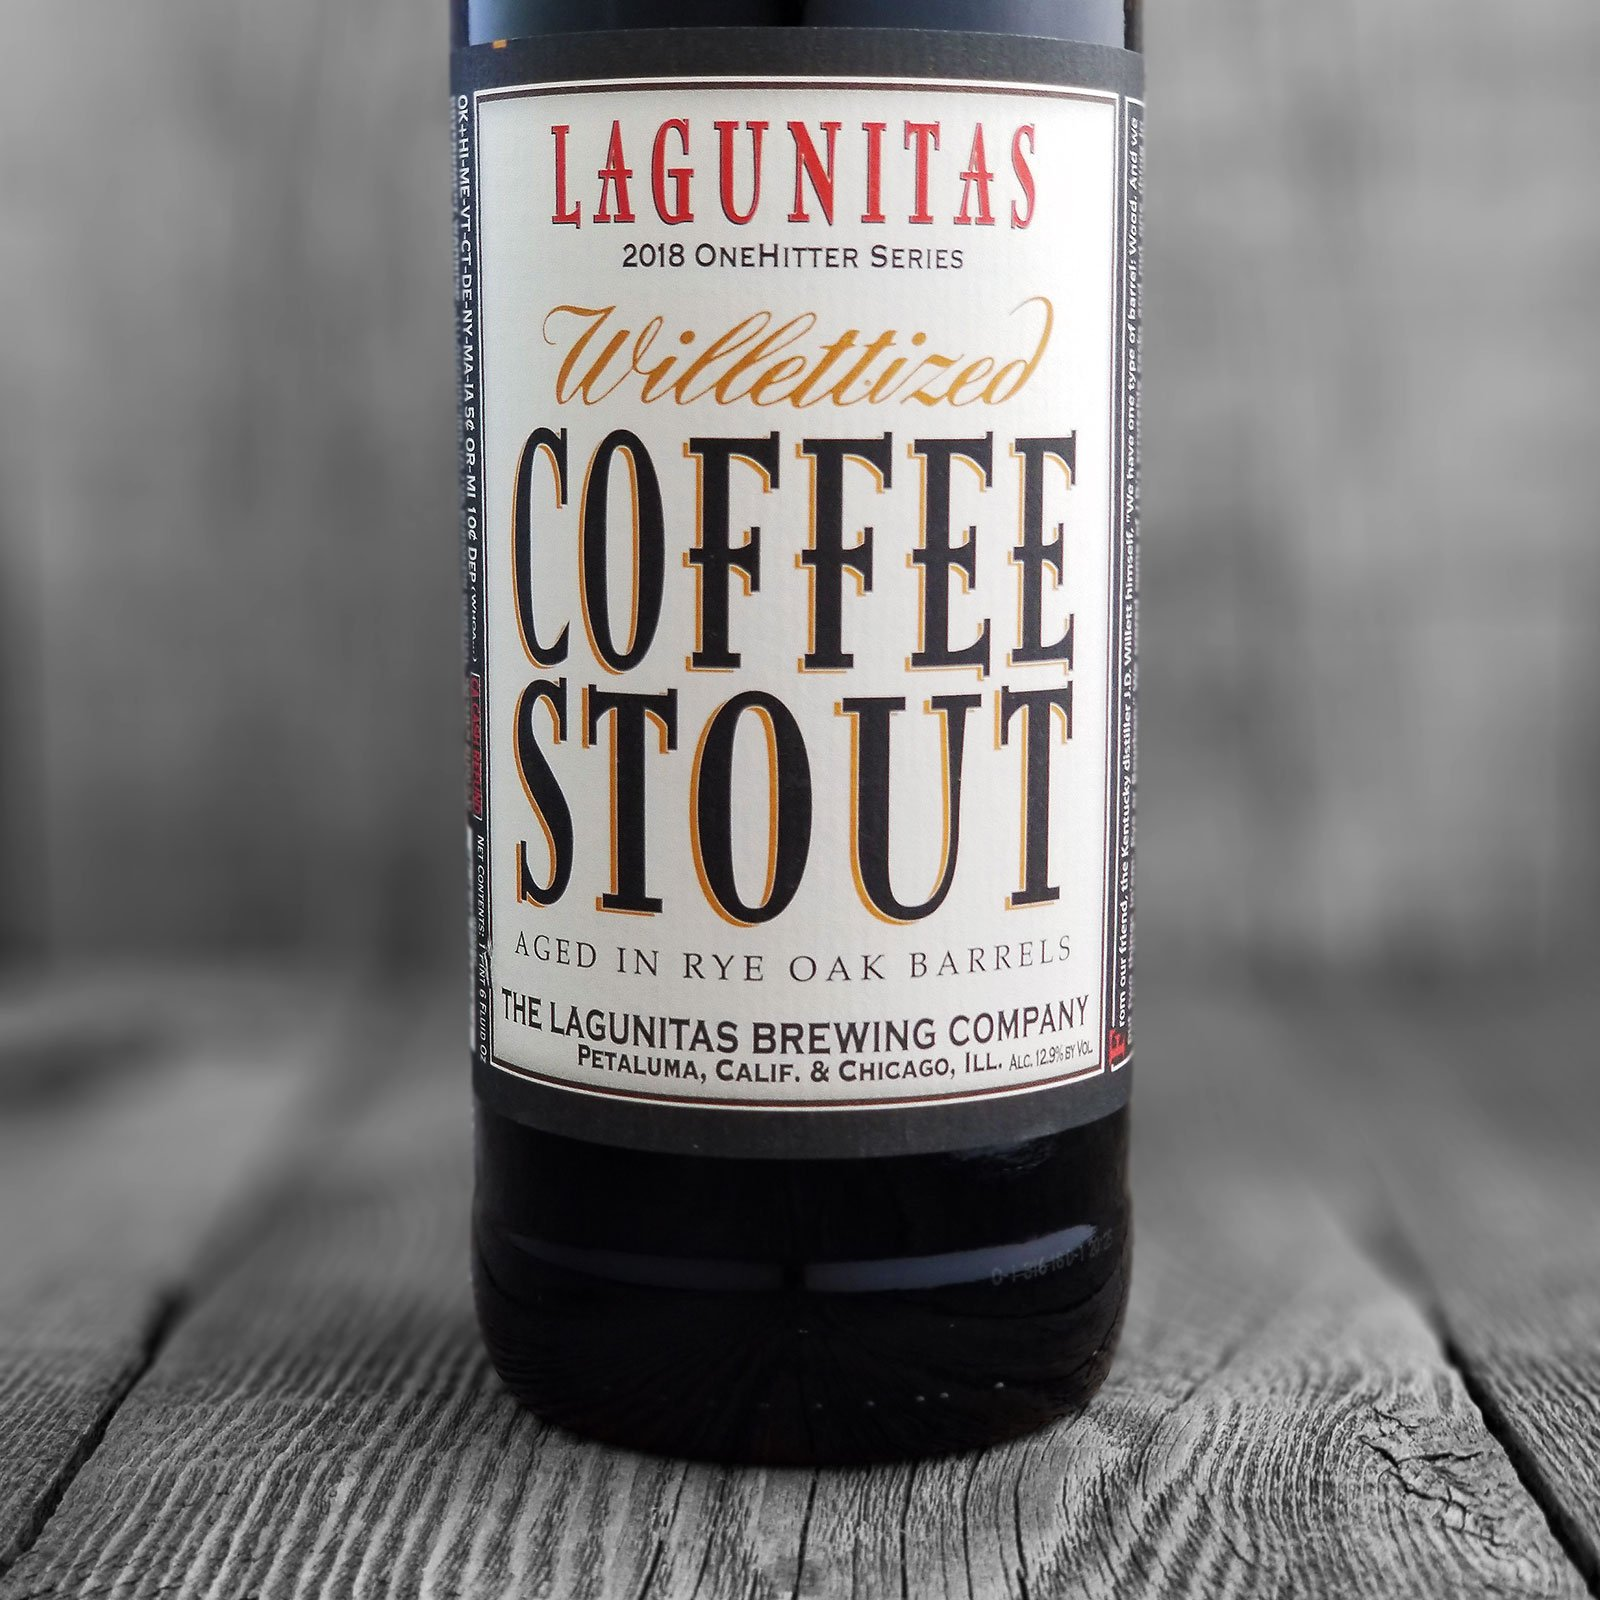 lagunitas-willettized-coffee-stout-2018-2ox-bottle_2048x2048.jpg